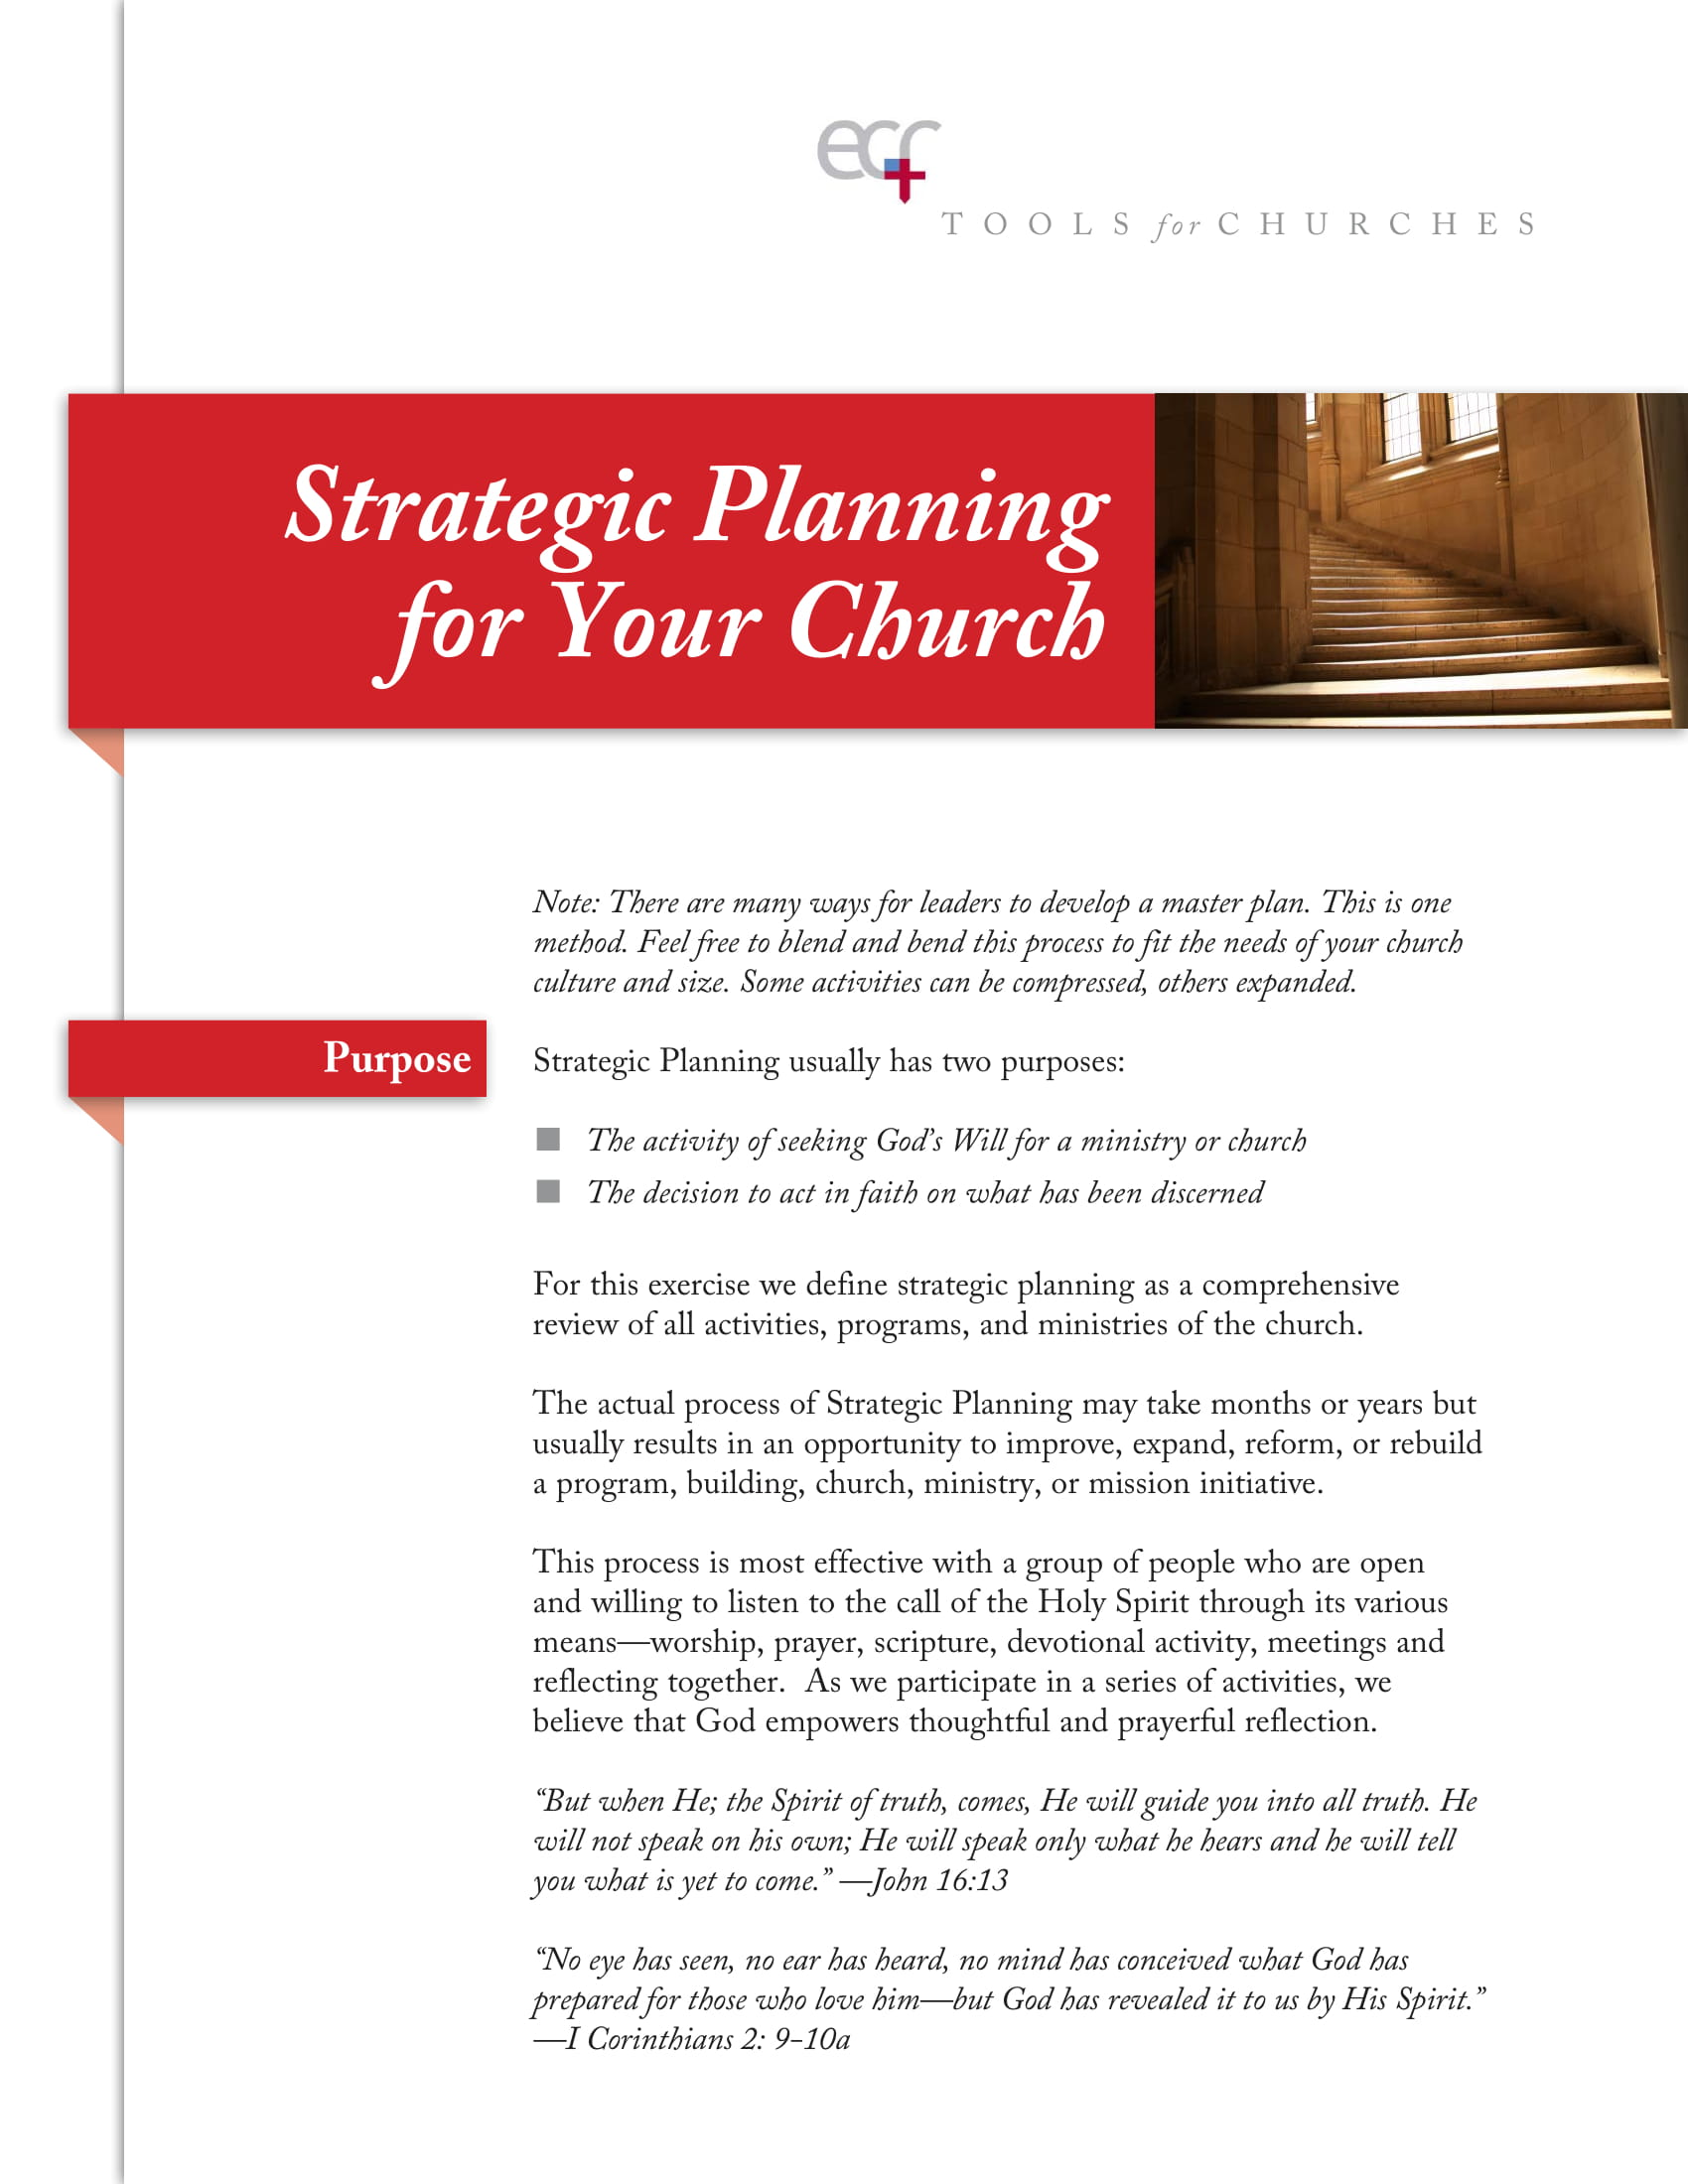 church marketing and operations strategic planning for your church example 1